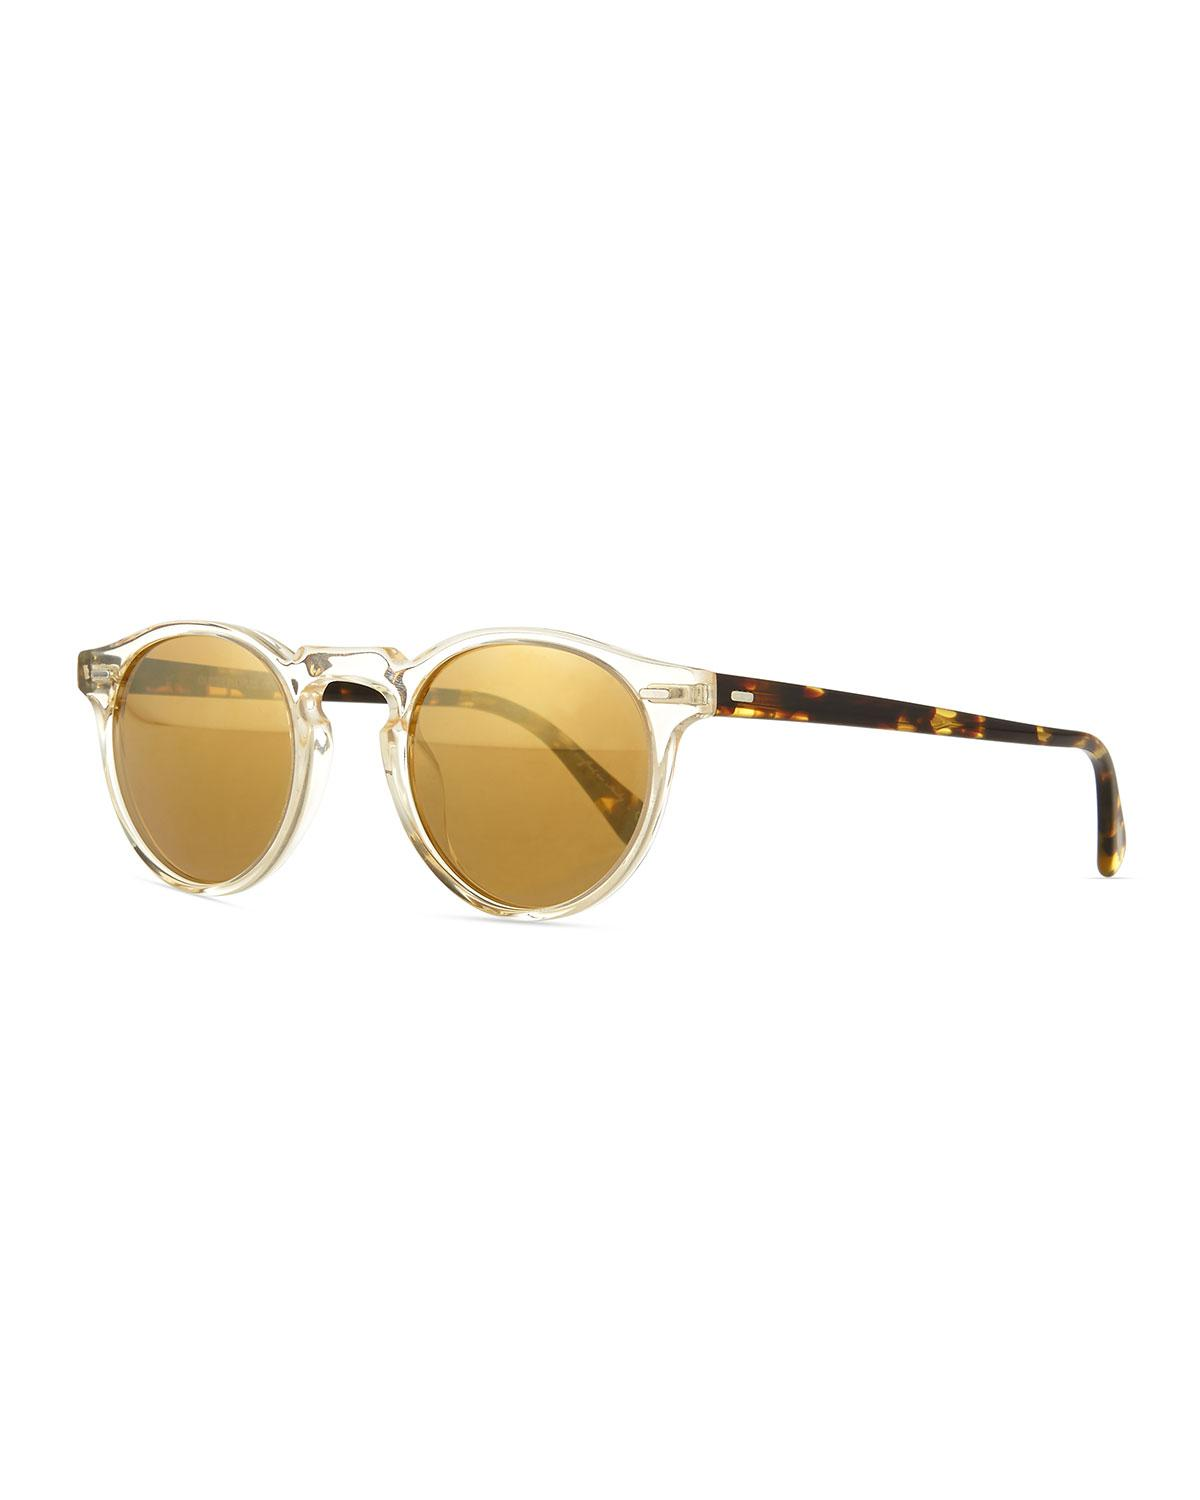 b4d29a28ce2 Oliver Peoples. Women s Gregory Peck Round Plastic Sunglasses.  365 From Neiman  Marcus ...